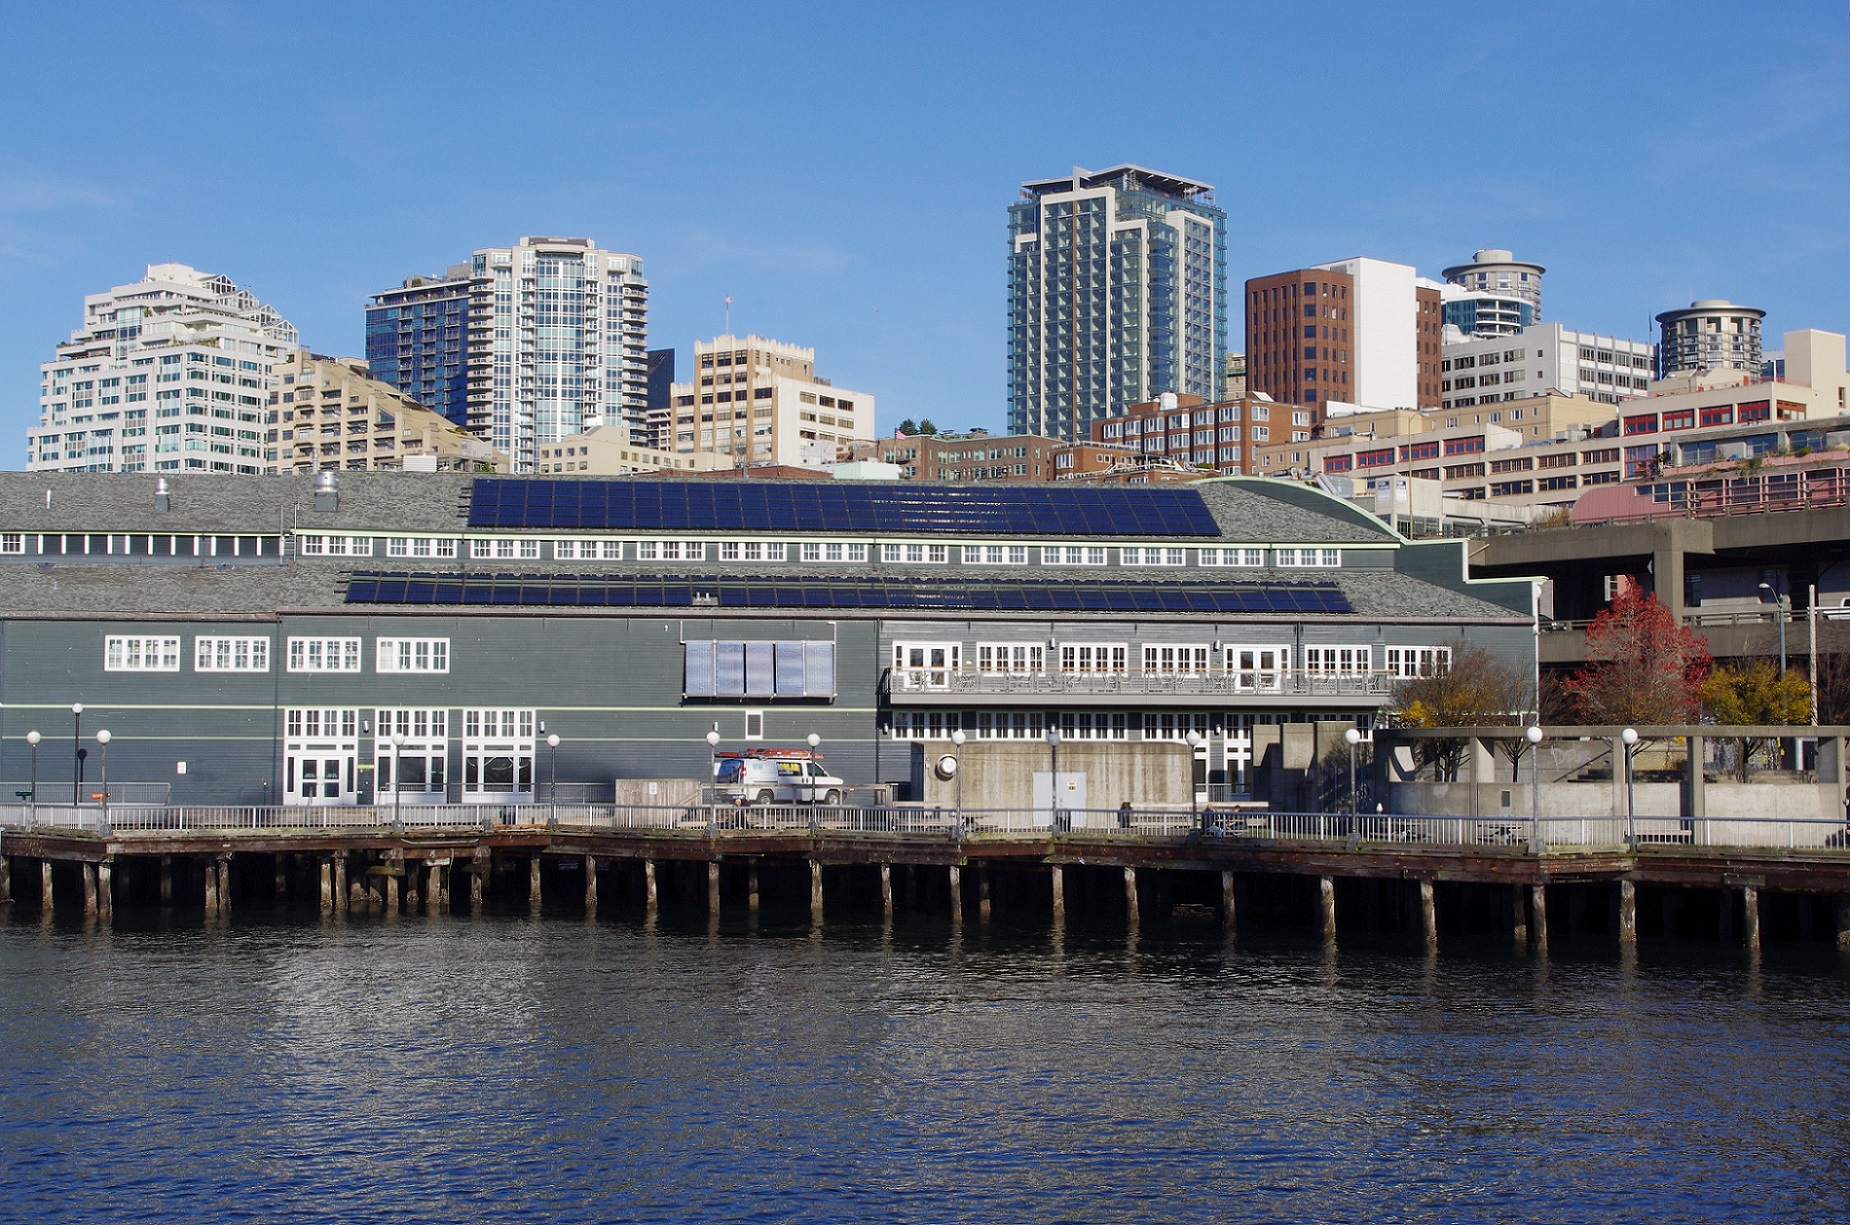 Seattle Aquarium with rooftop solar panels